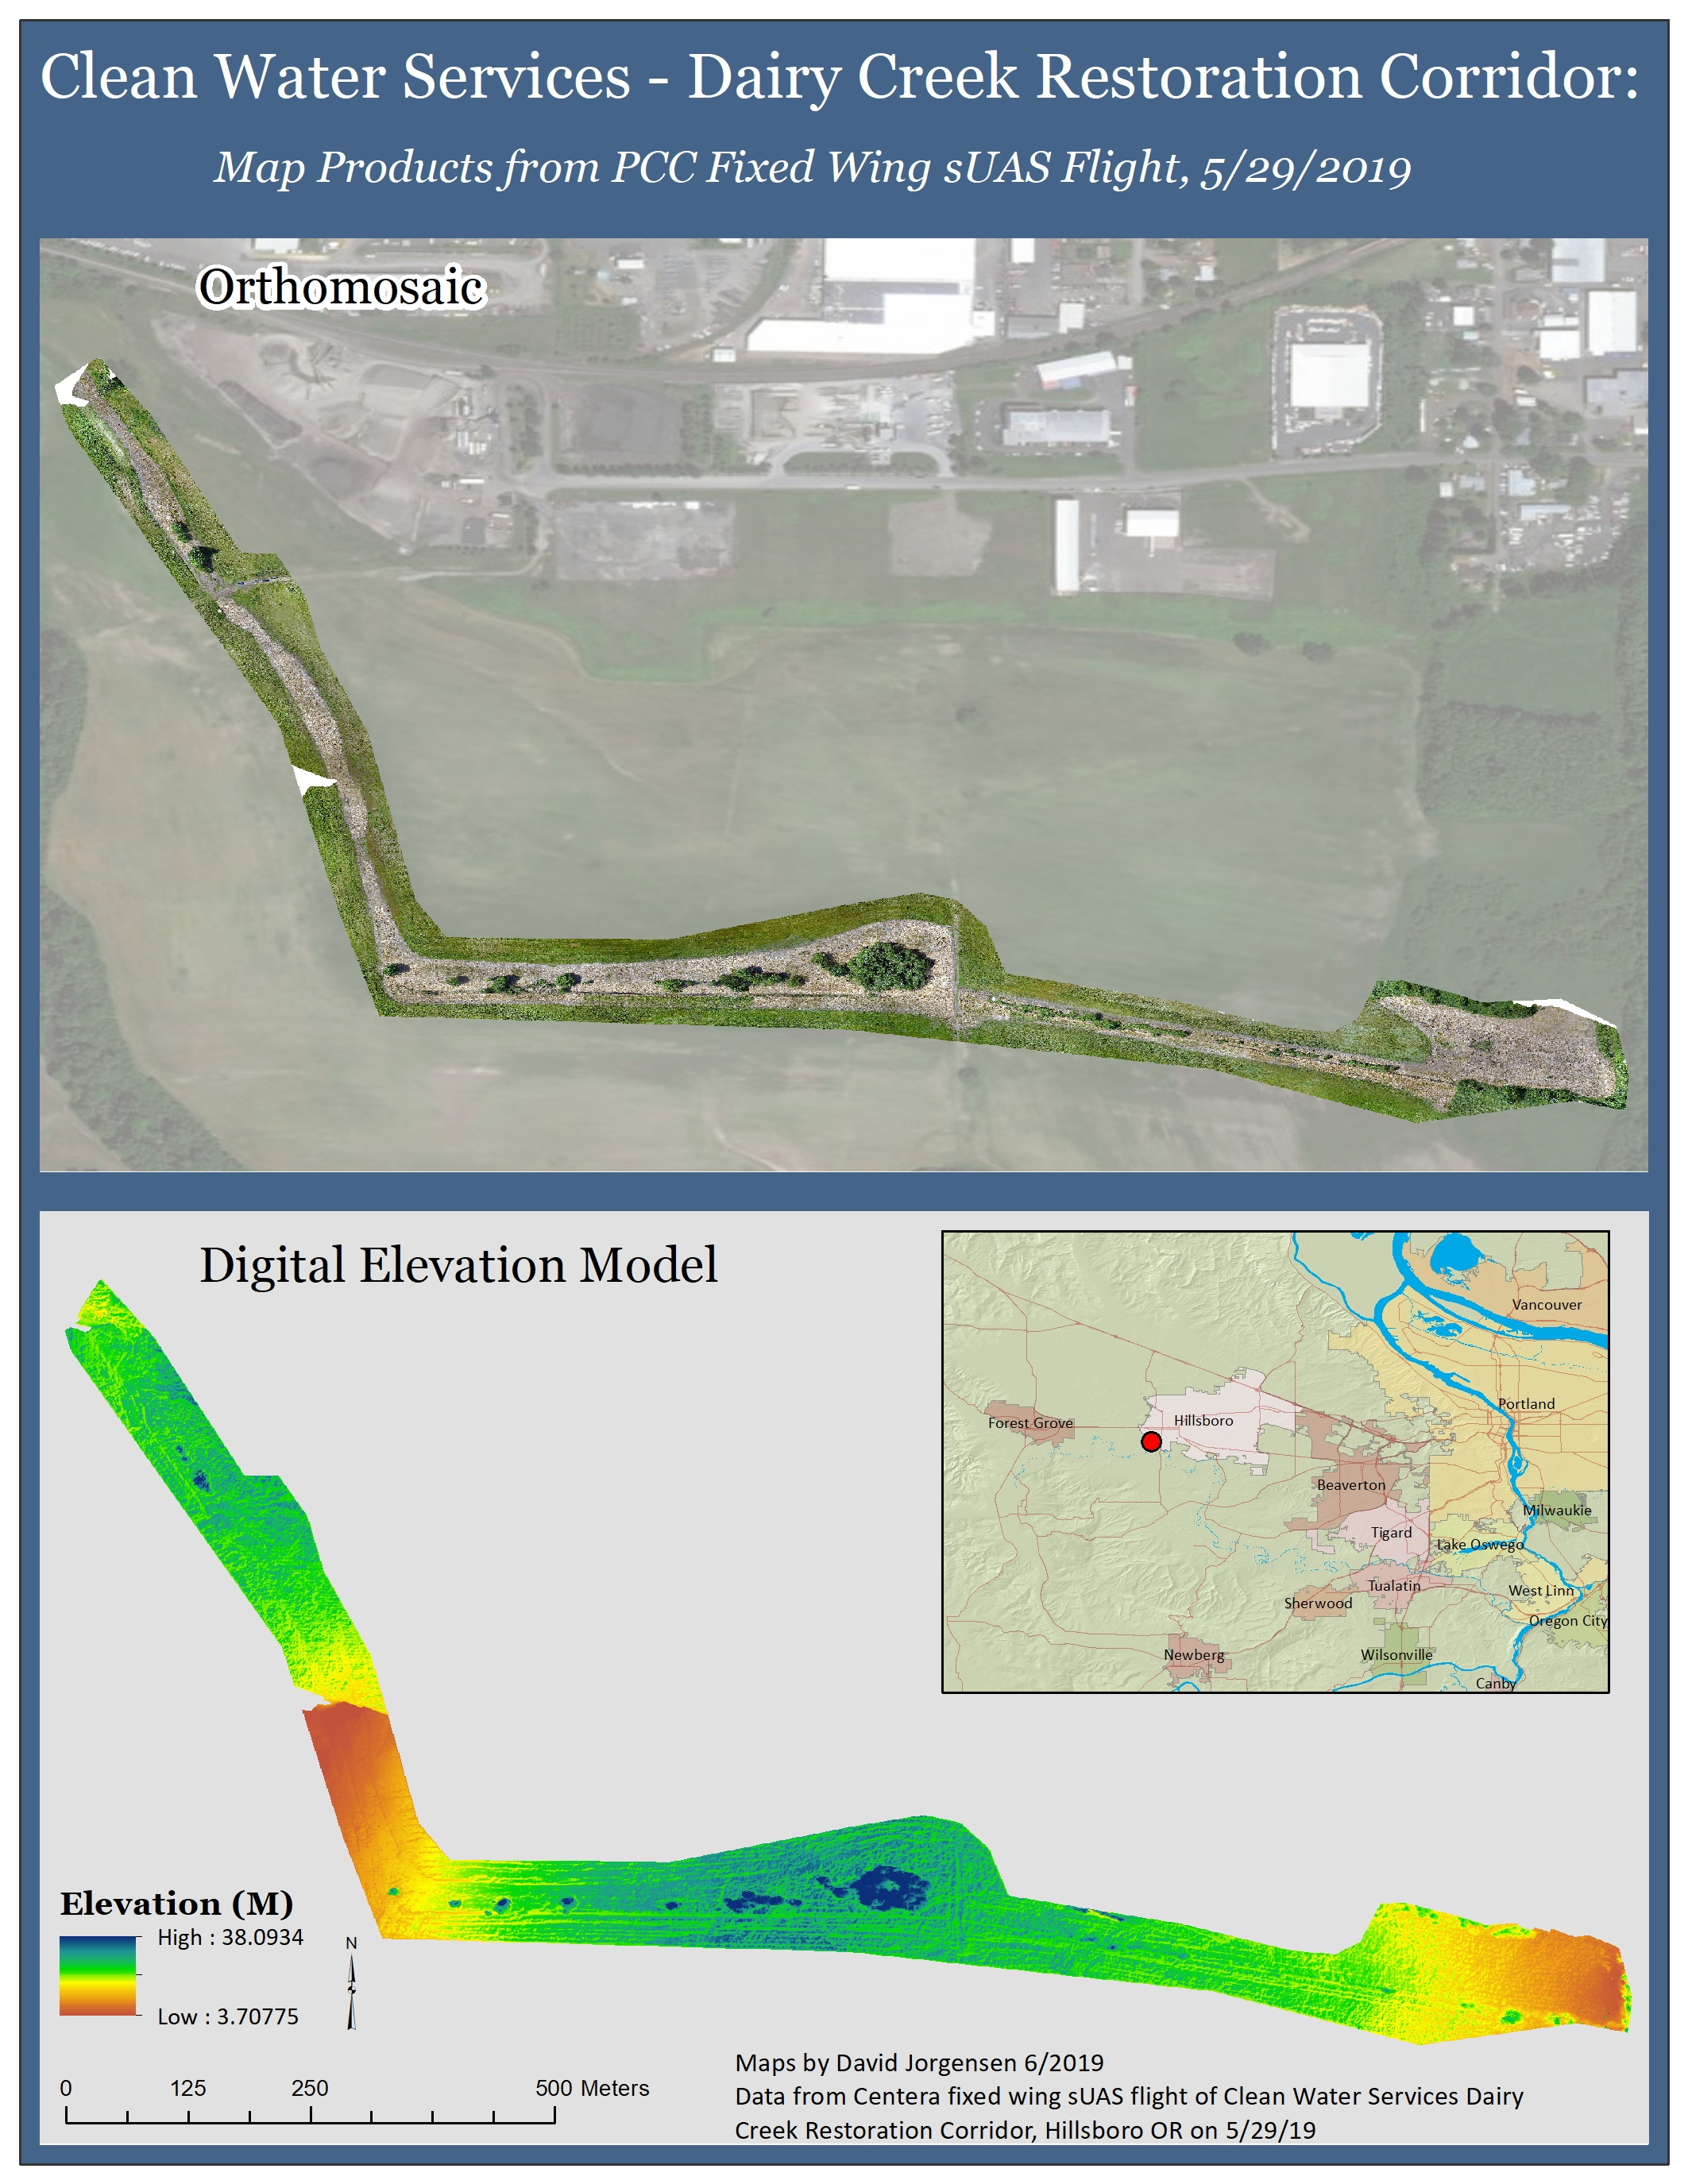 Drone Mapping of Dairy Creek Corridor